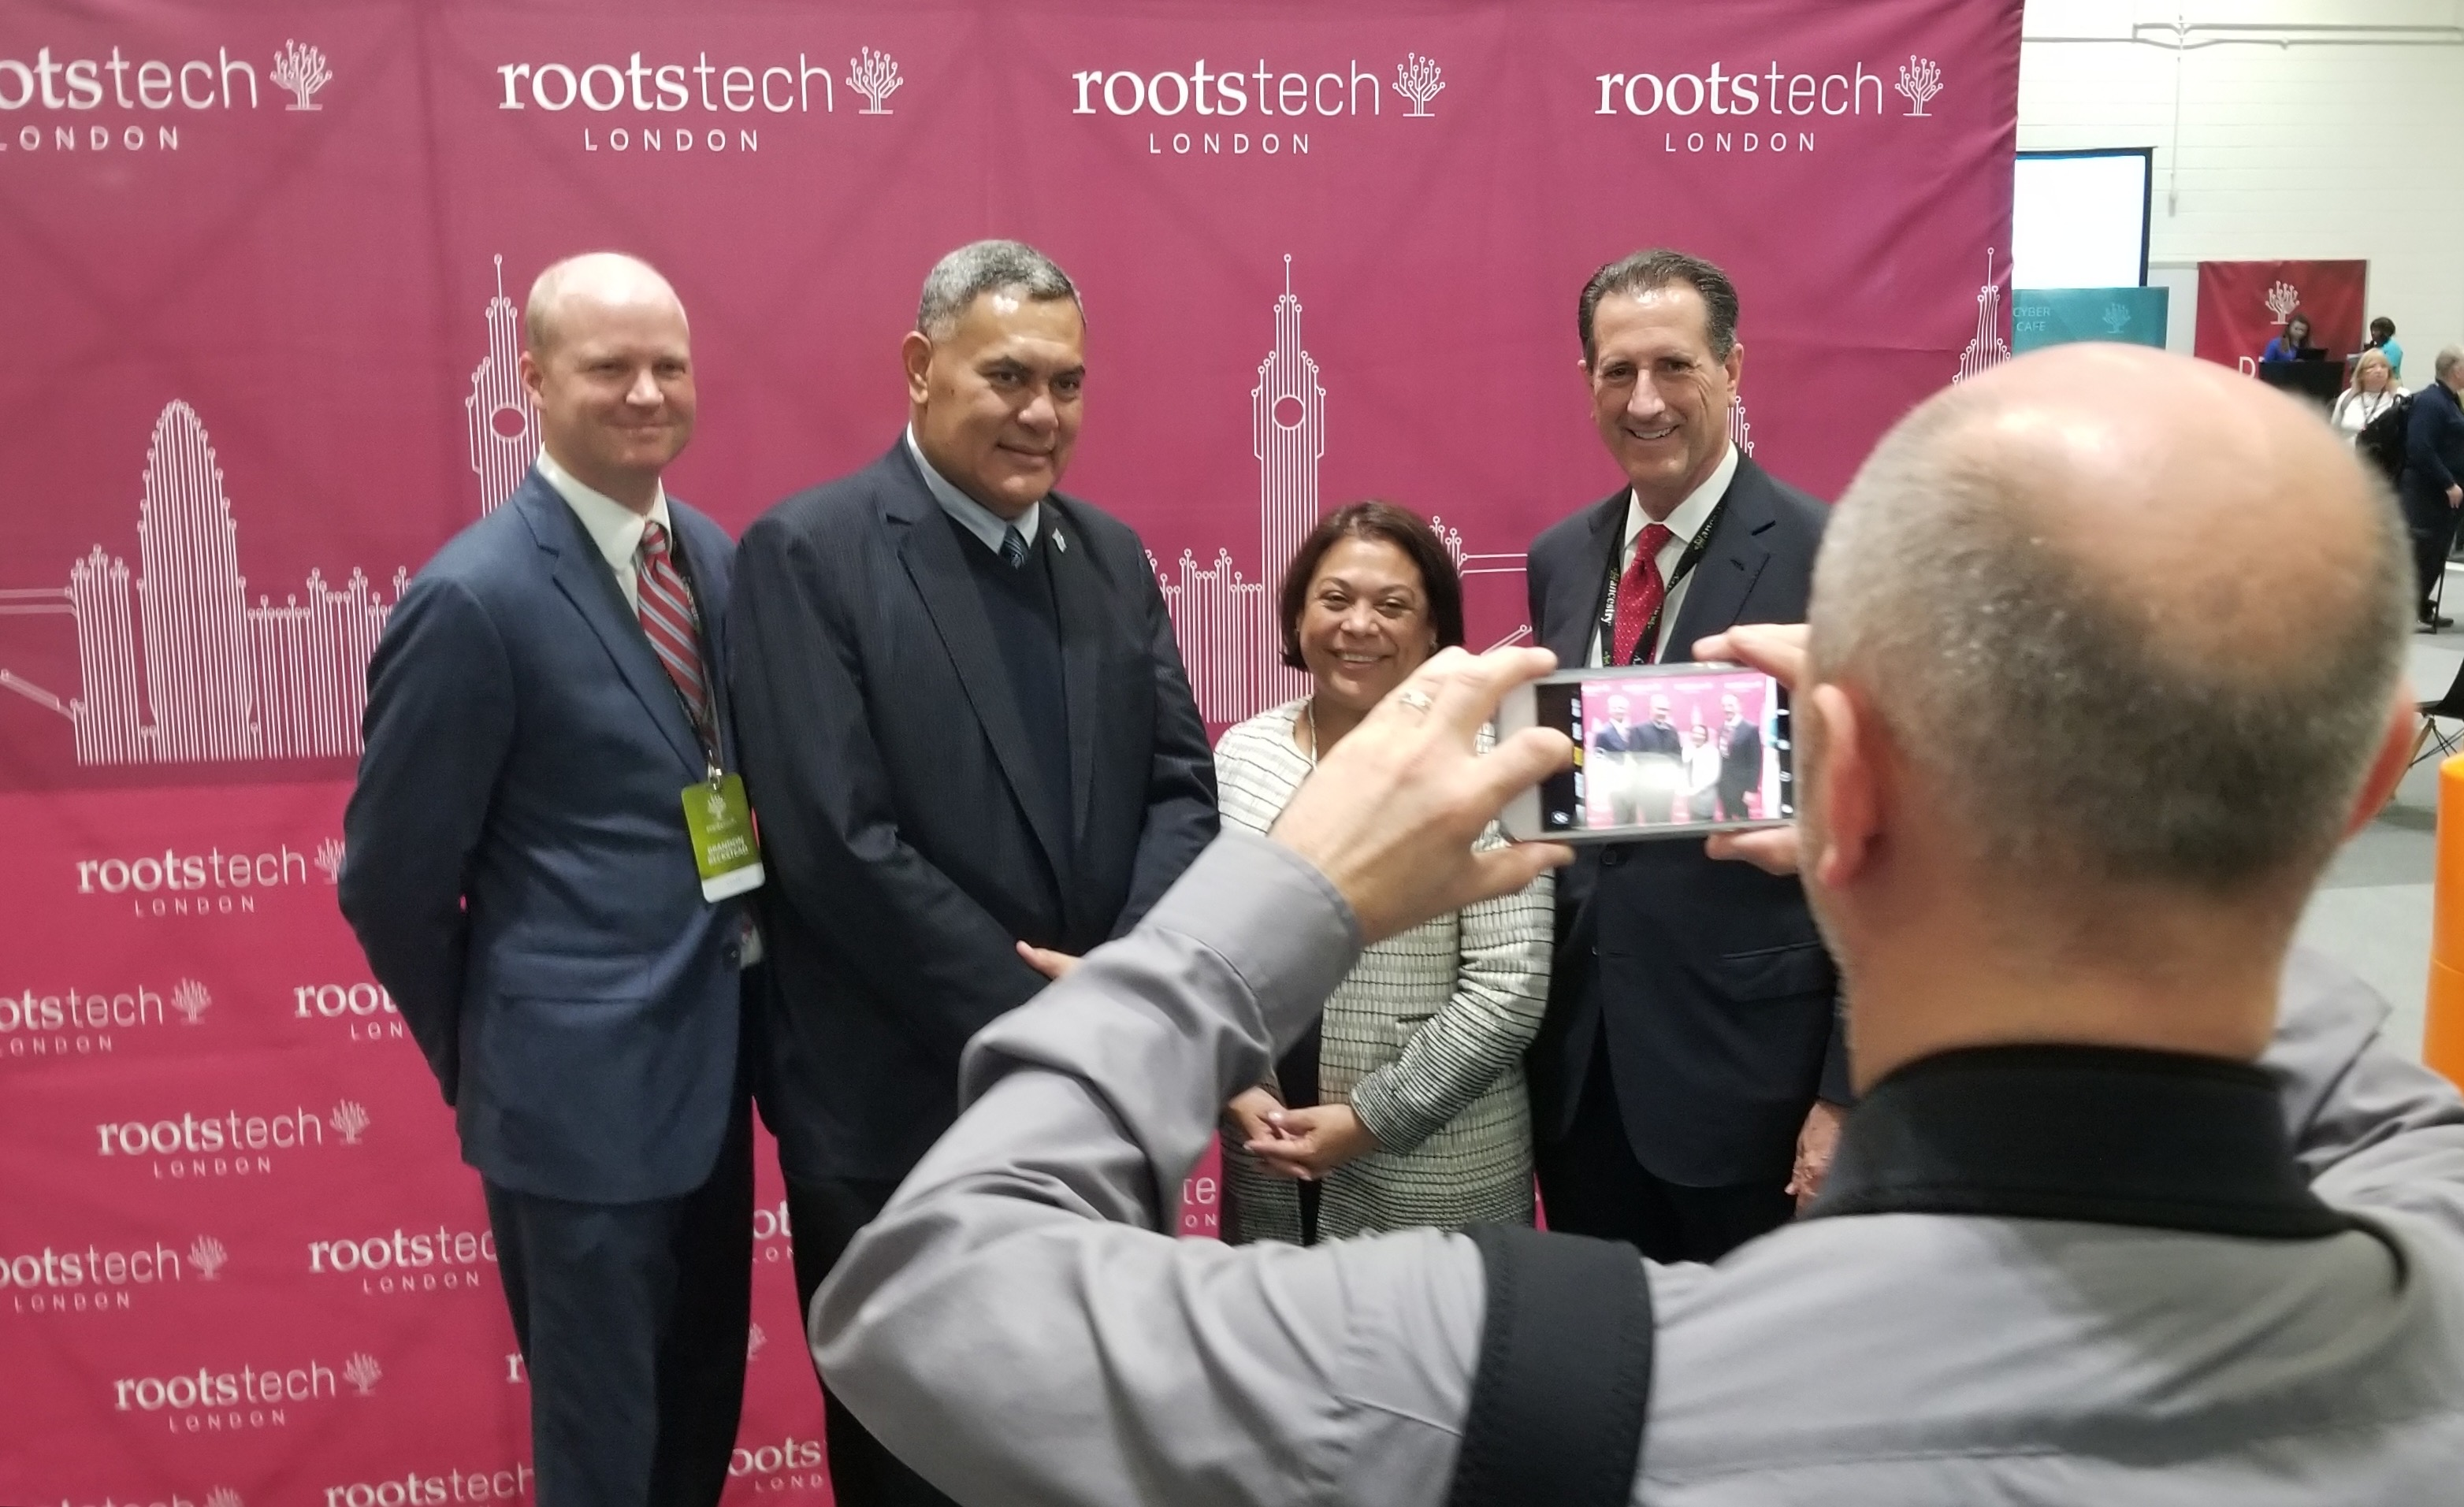 Guests are photographed in the VIP section of the RootsTech London exhibition hall during tours for ambassadors and records custodians on Oct. 24, 2019, in London.